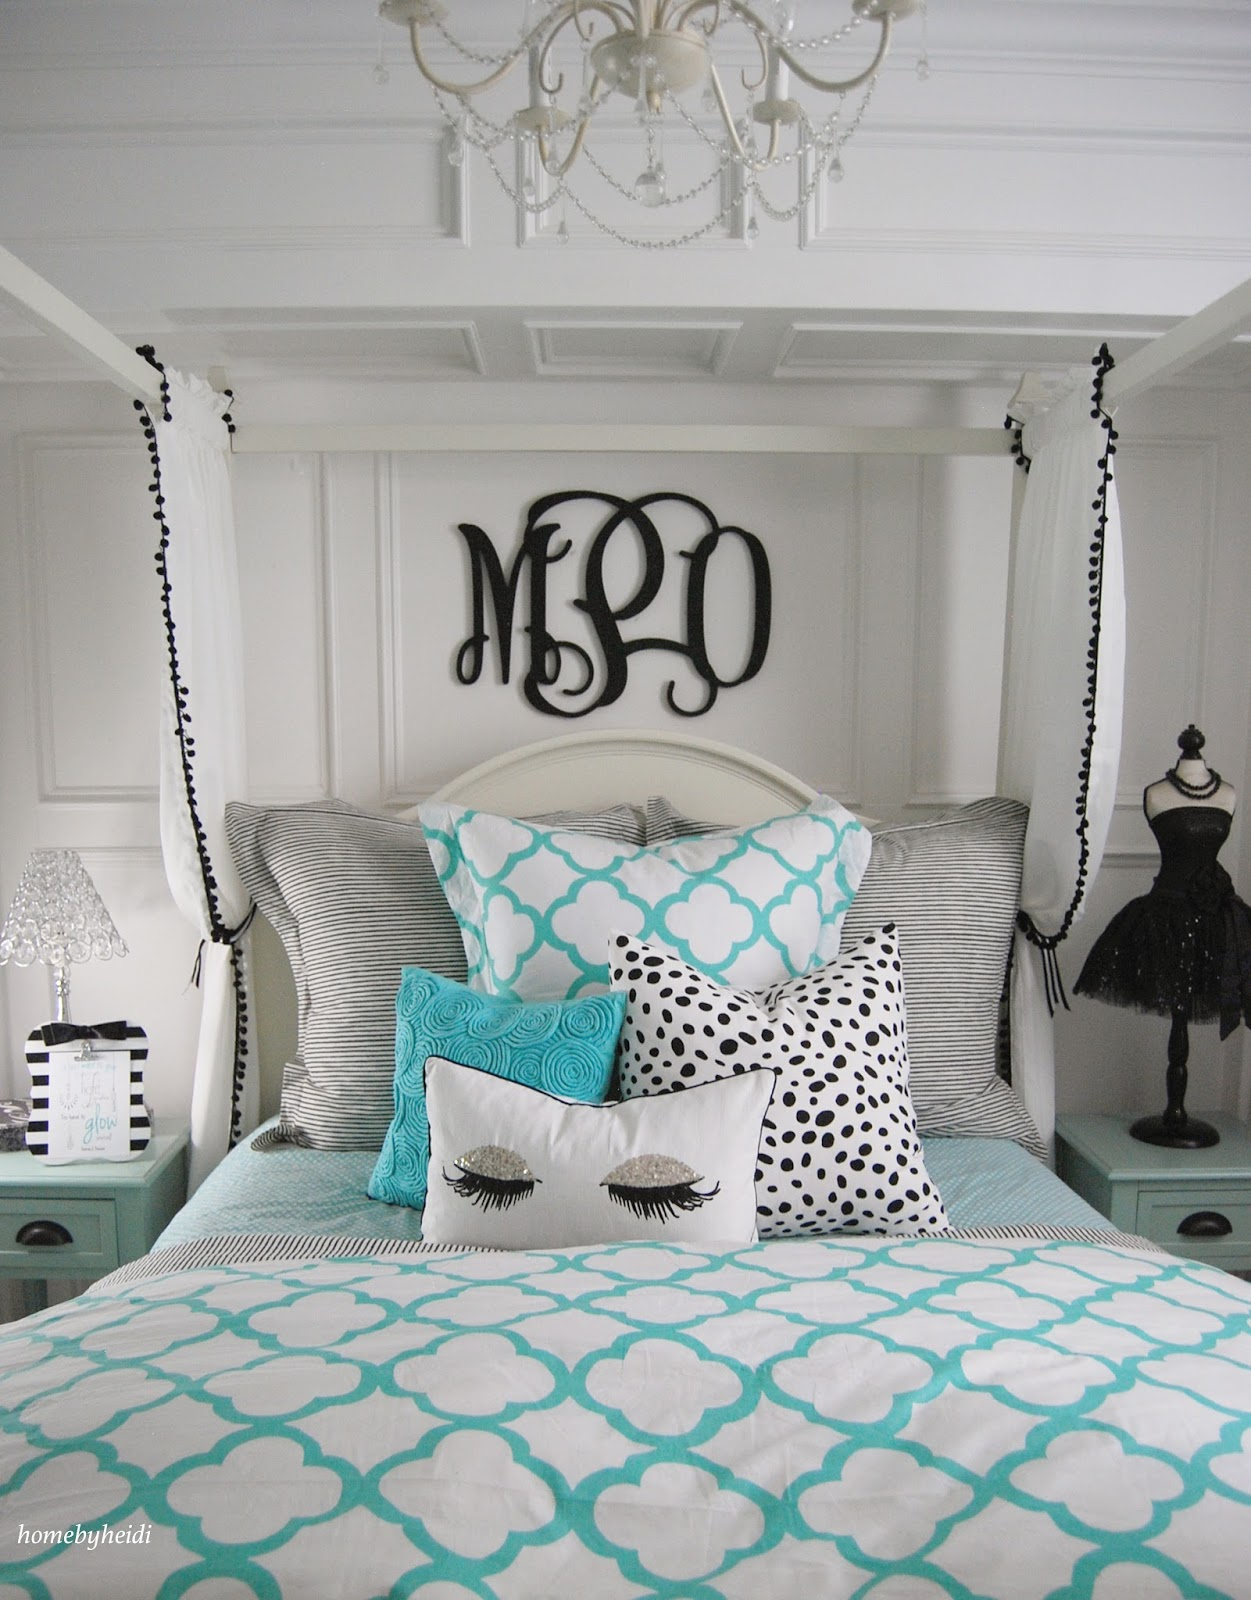 Home By Heidi: Tiffany Inspired Bedroom on Room Decor For Teens  id=81083